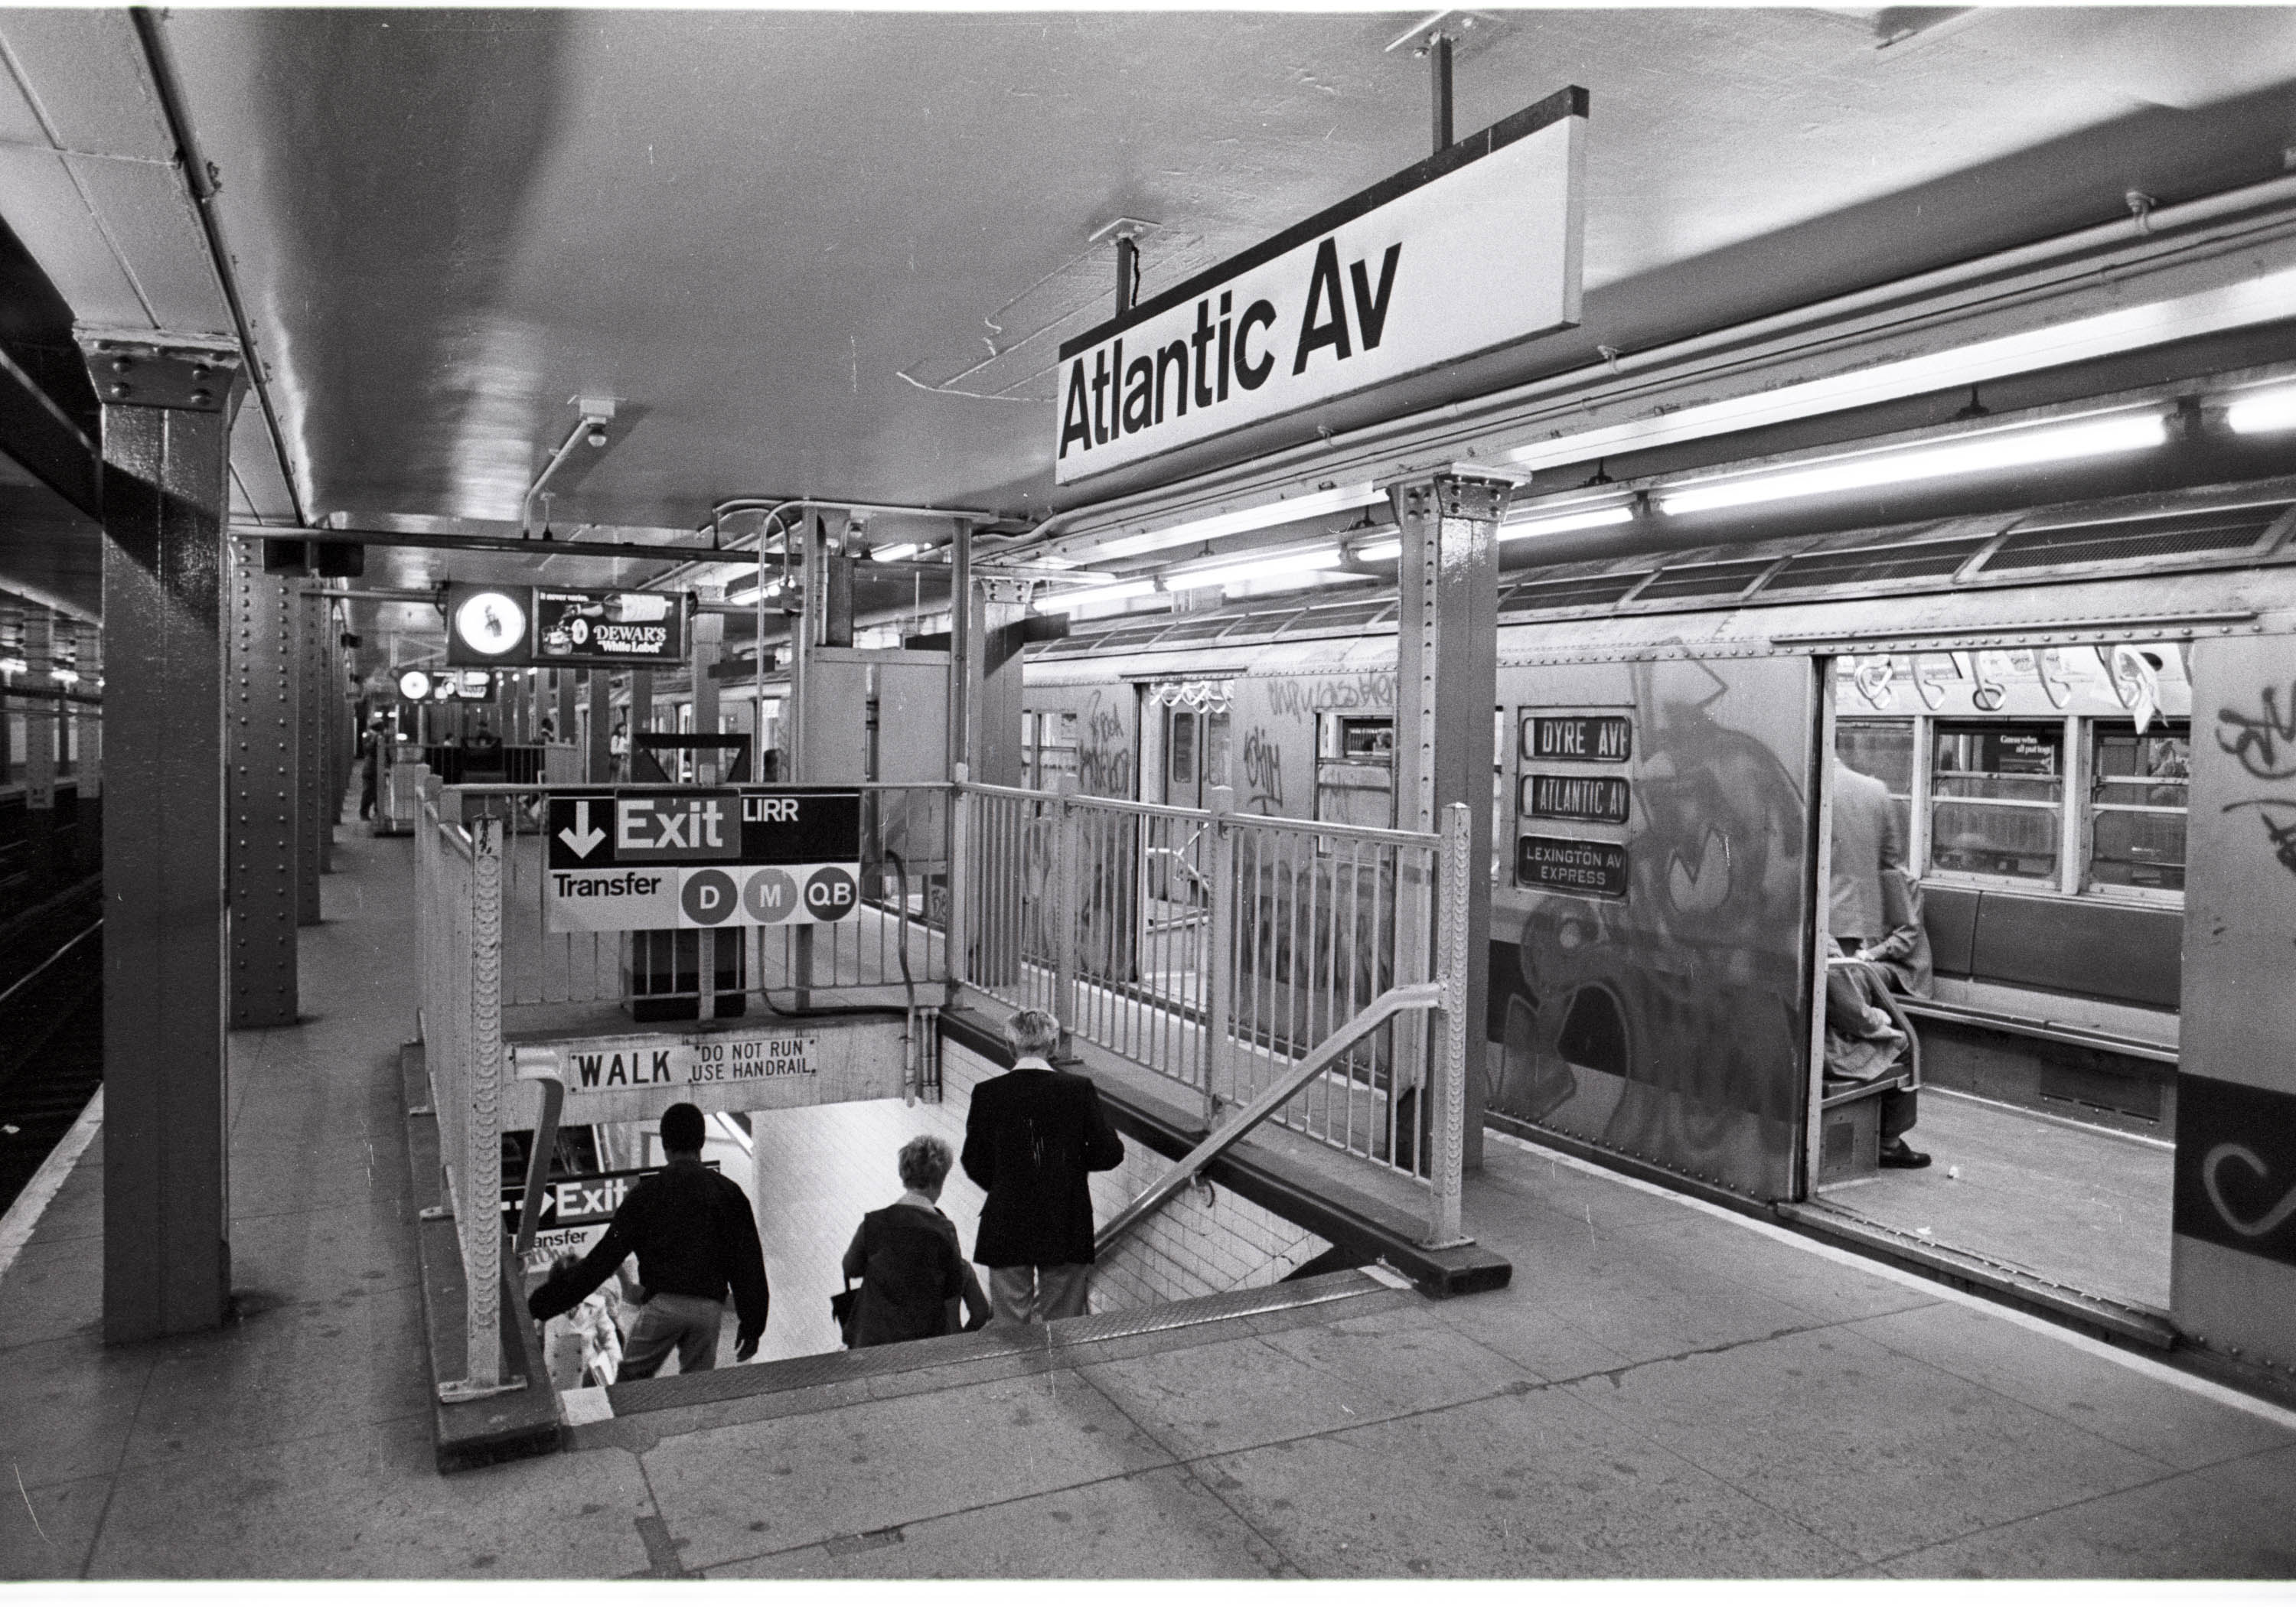 Atlantic avenue station new york city subway signage c 1973